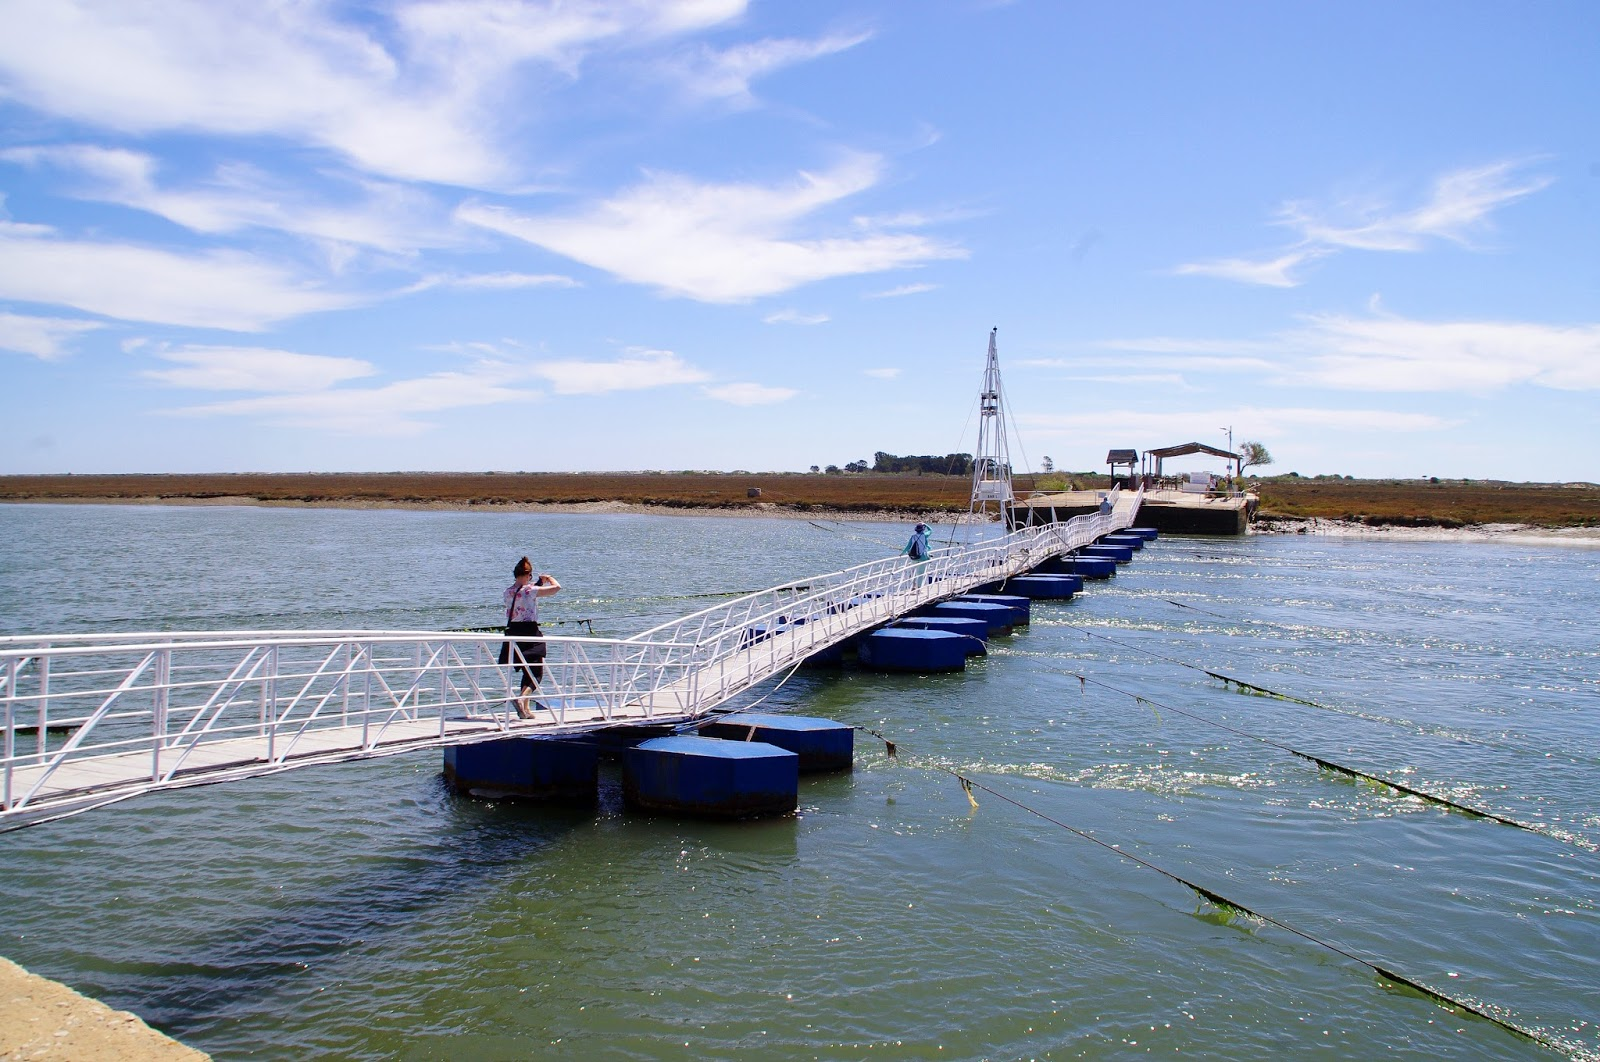 Bridge across Ria Formosa